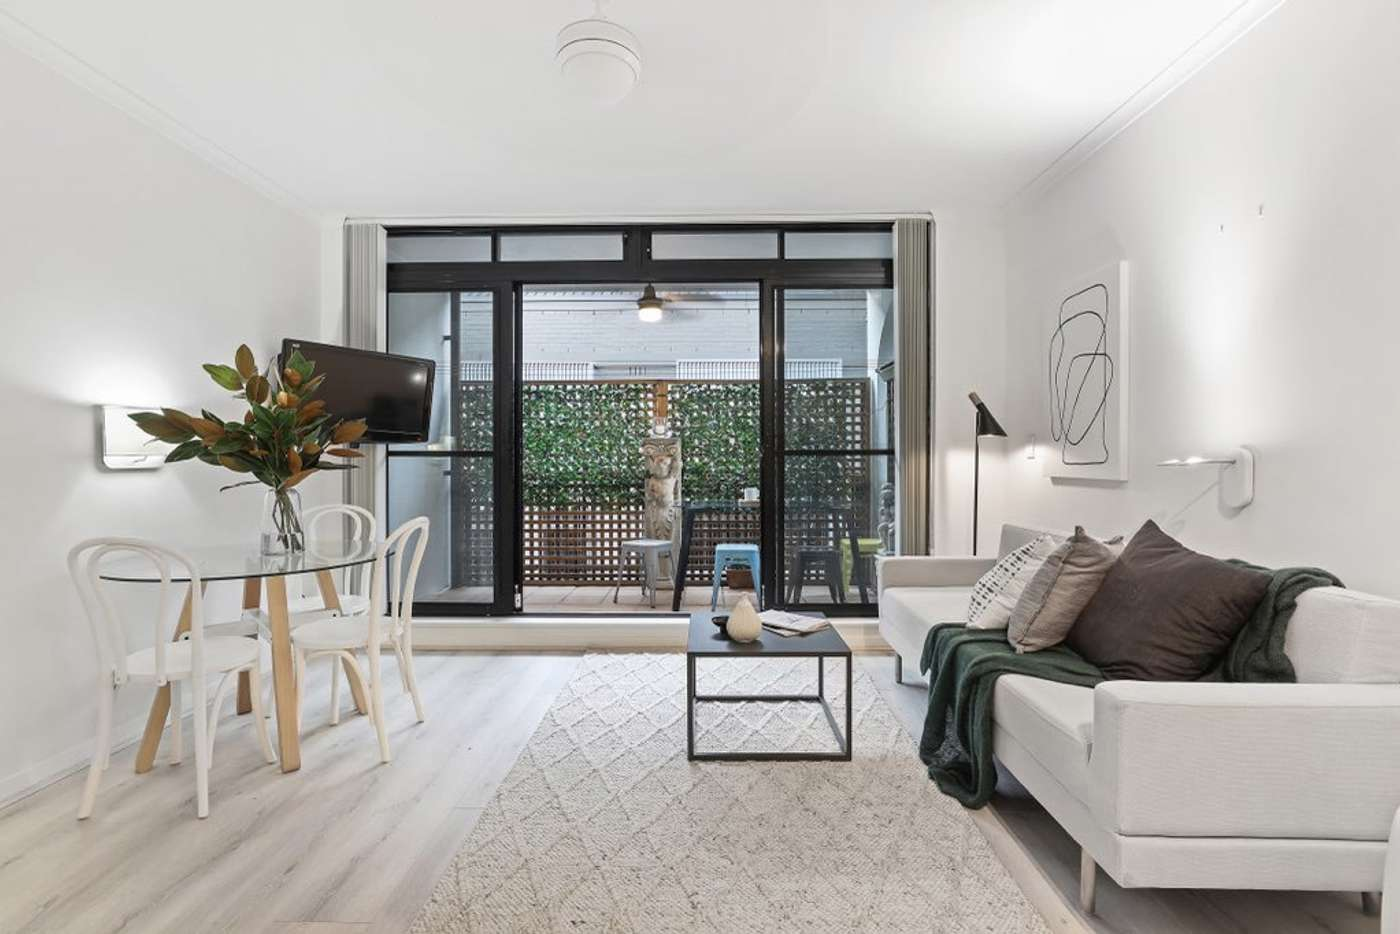 Main view of Homely apartment listing, 16/173-175 Cathedral Street, Woolloomooloo NSW 2011